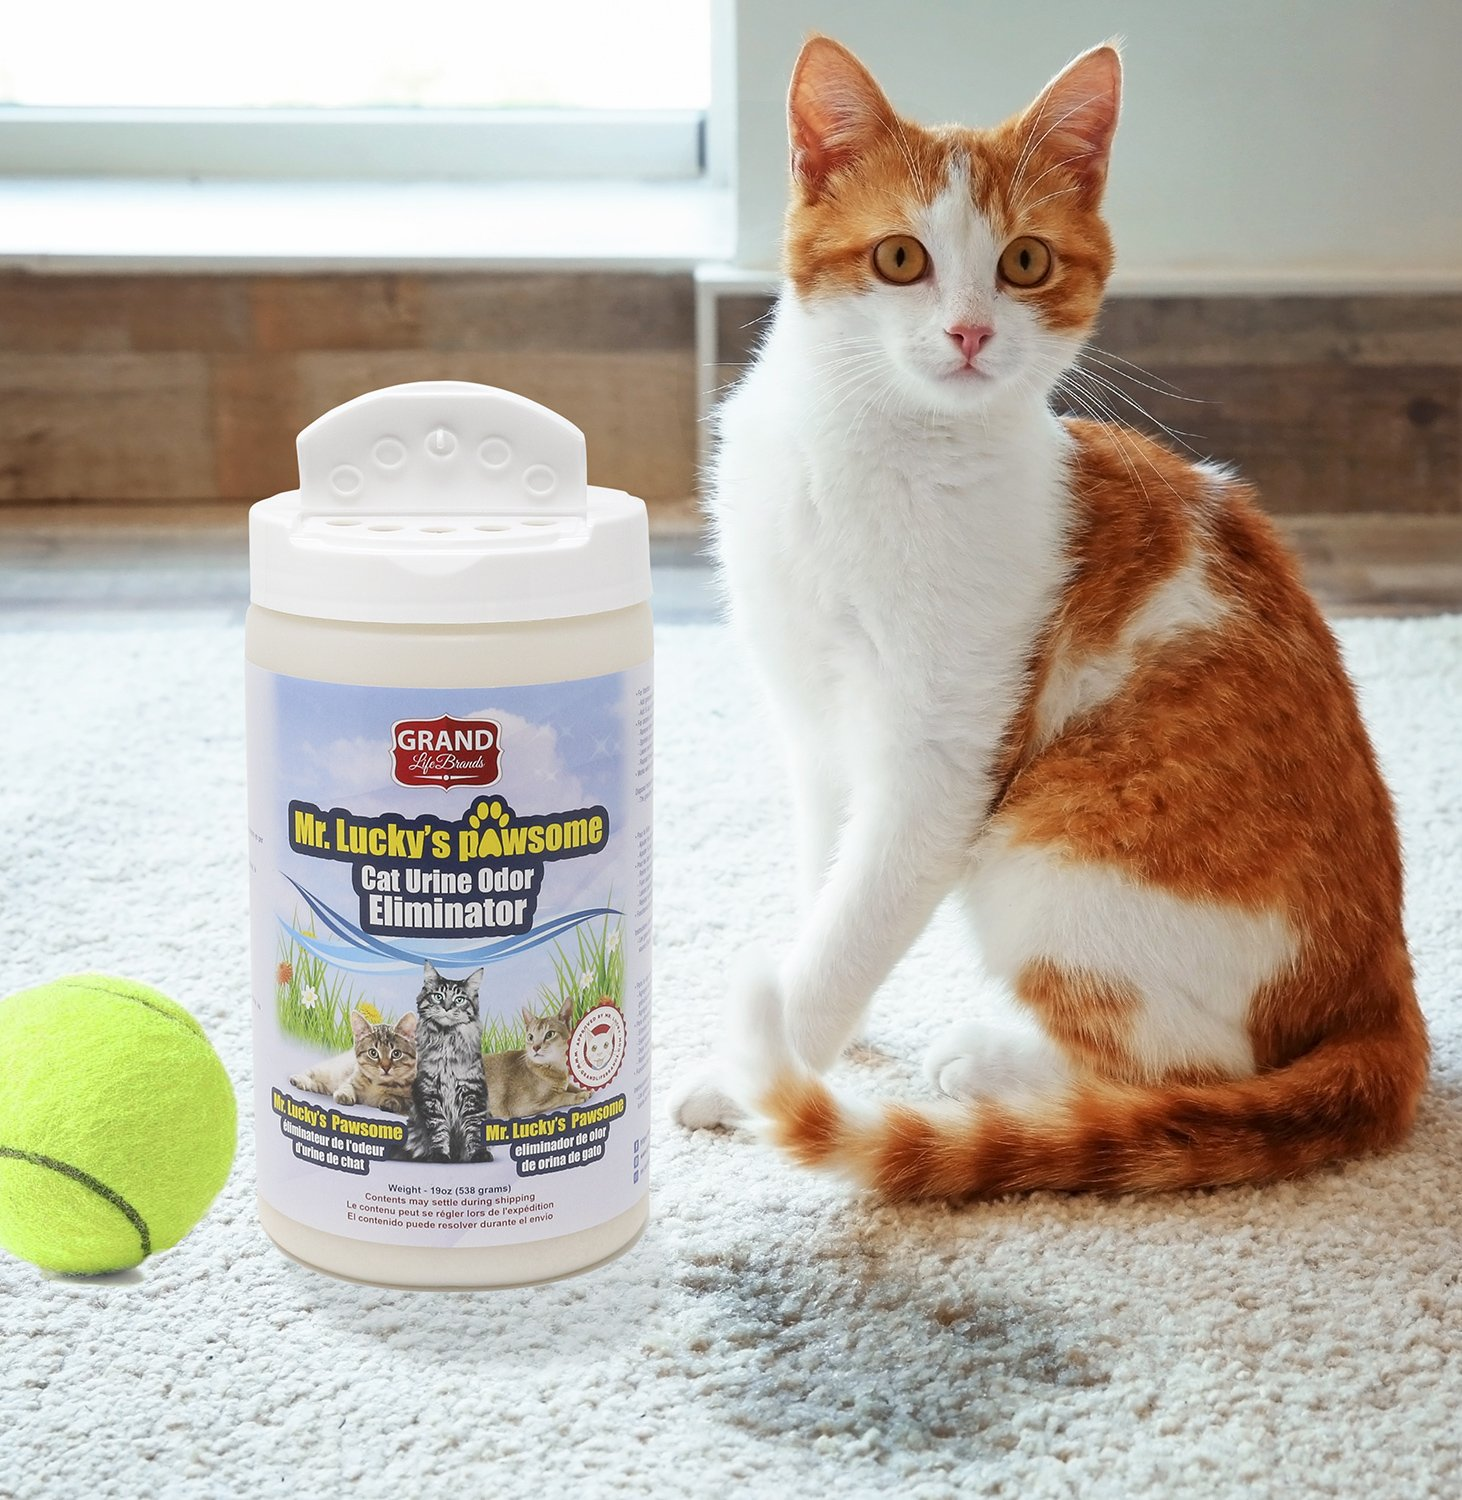 Amazon.com : GrandLifeBrands Mr. Luckys PAWsome Cat Urine Odor Eliminator keeps the cat litter boxes smelling fresh, and helps felines and their humans ...